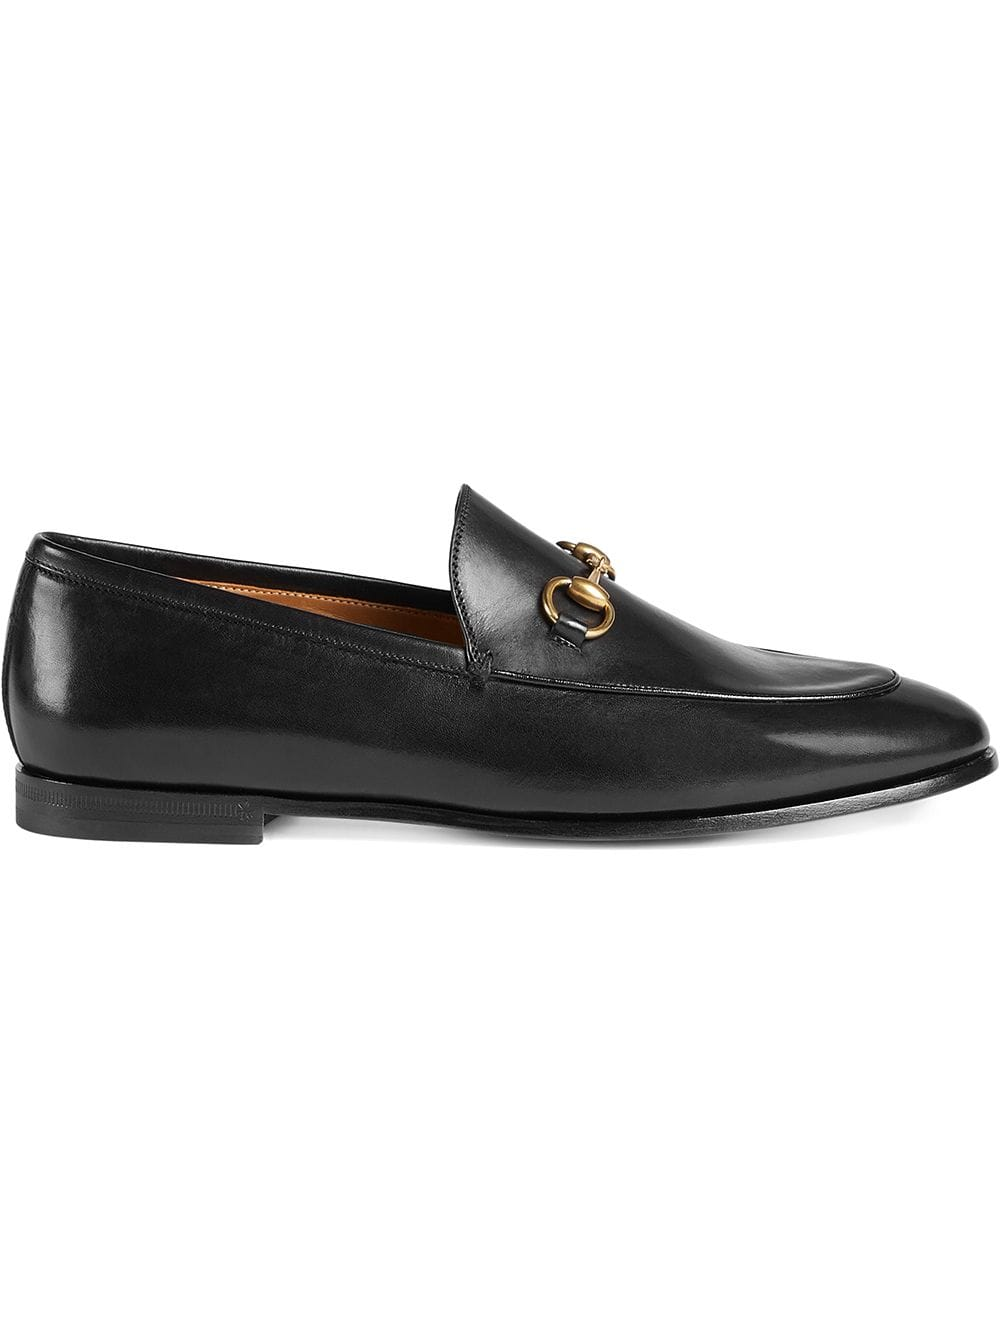 Jordan Leather Loafers